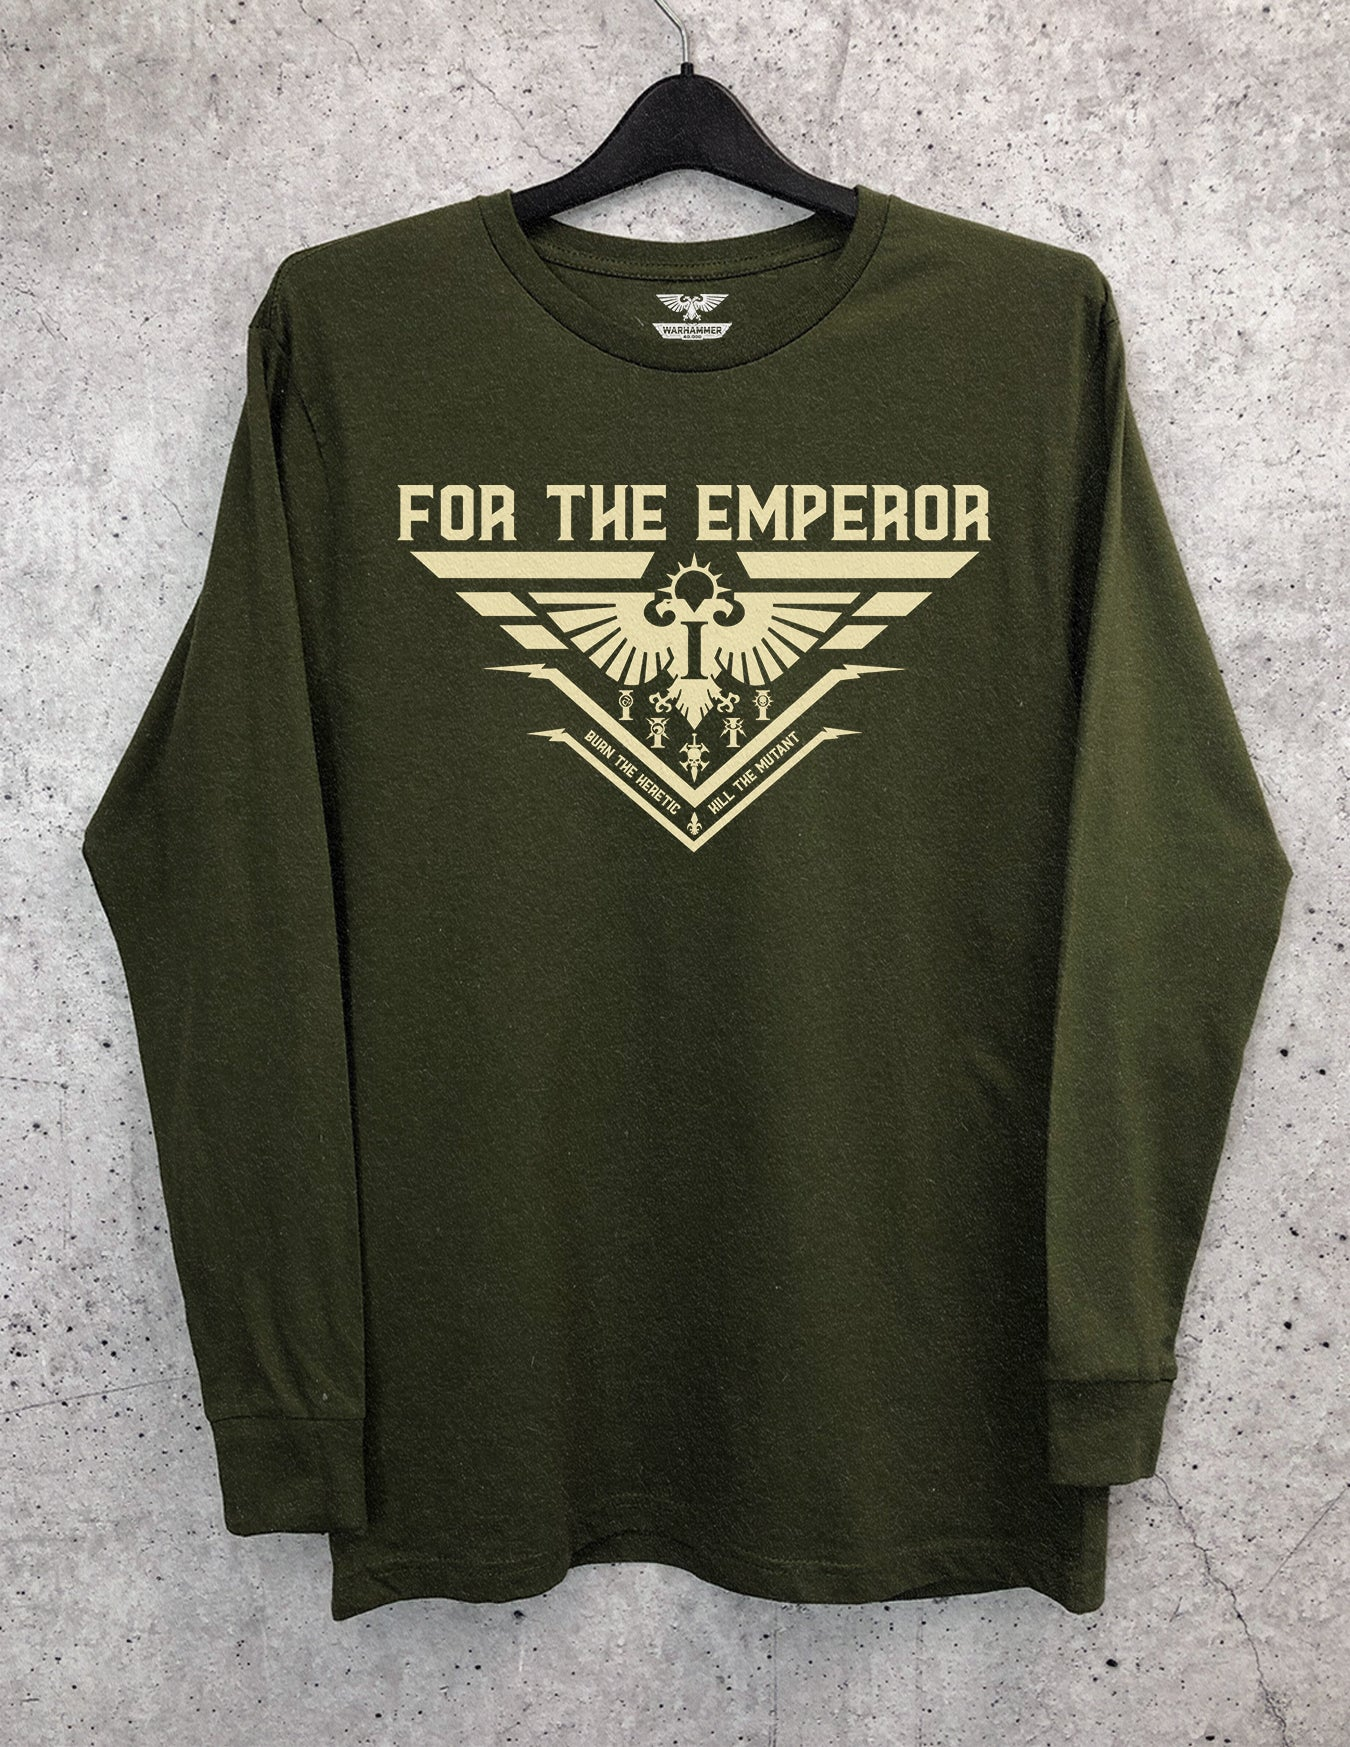 For The Emperor Long Sleeve Crewneck Tee